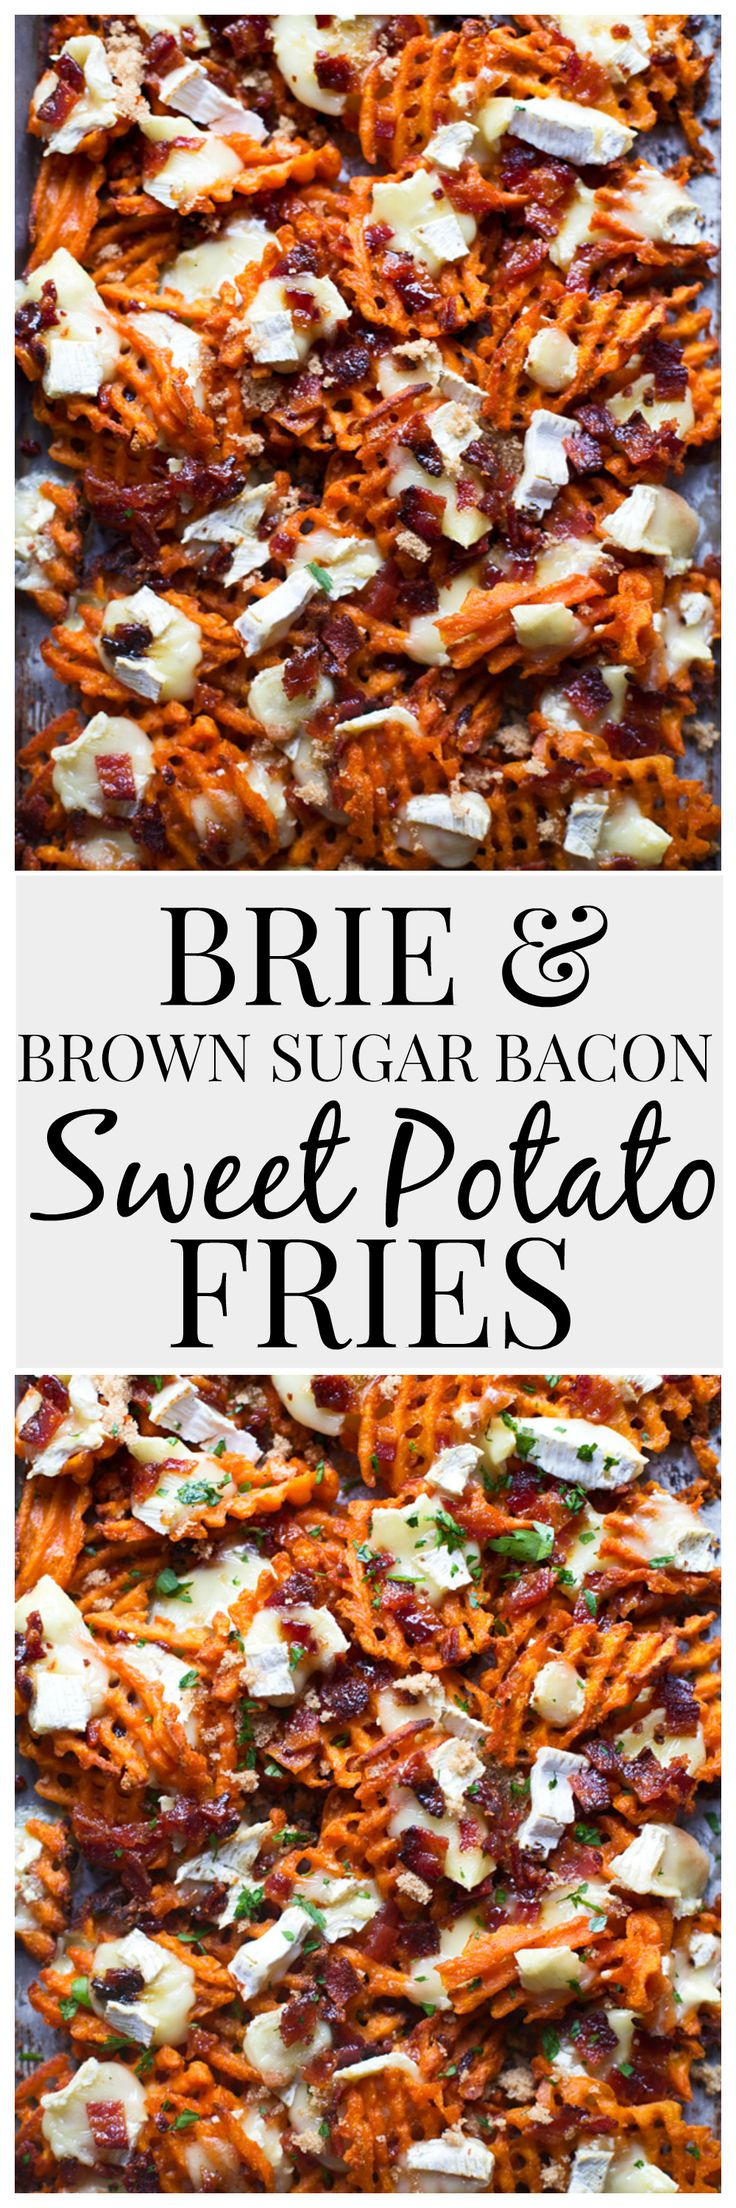 25+ best ideas about French Fries on Pinterest | Homemade ...